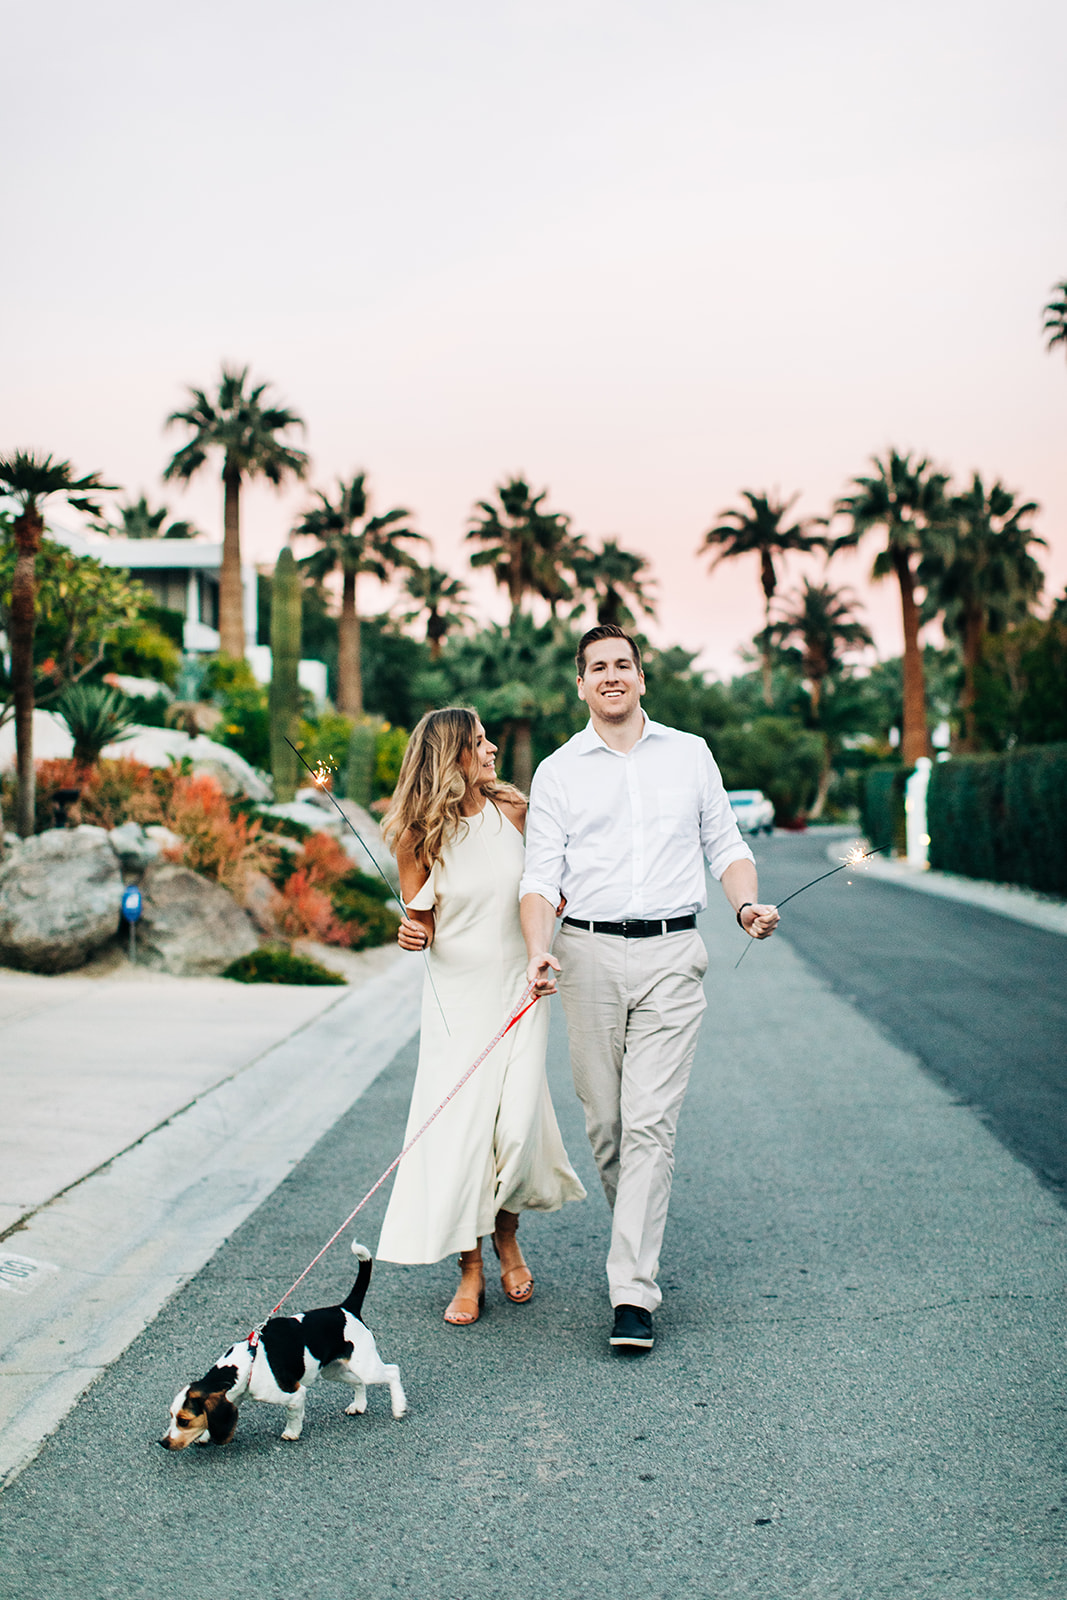 Paulina-Drew_Palm-Springs-Engagement-Photos_Clarisse-Rae_Southern-California-Wedding-Photographer-55